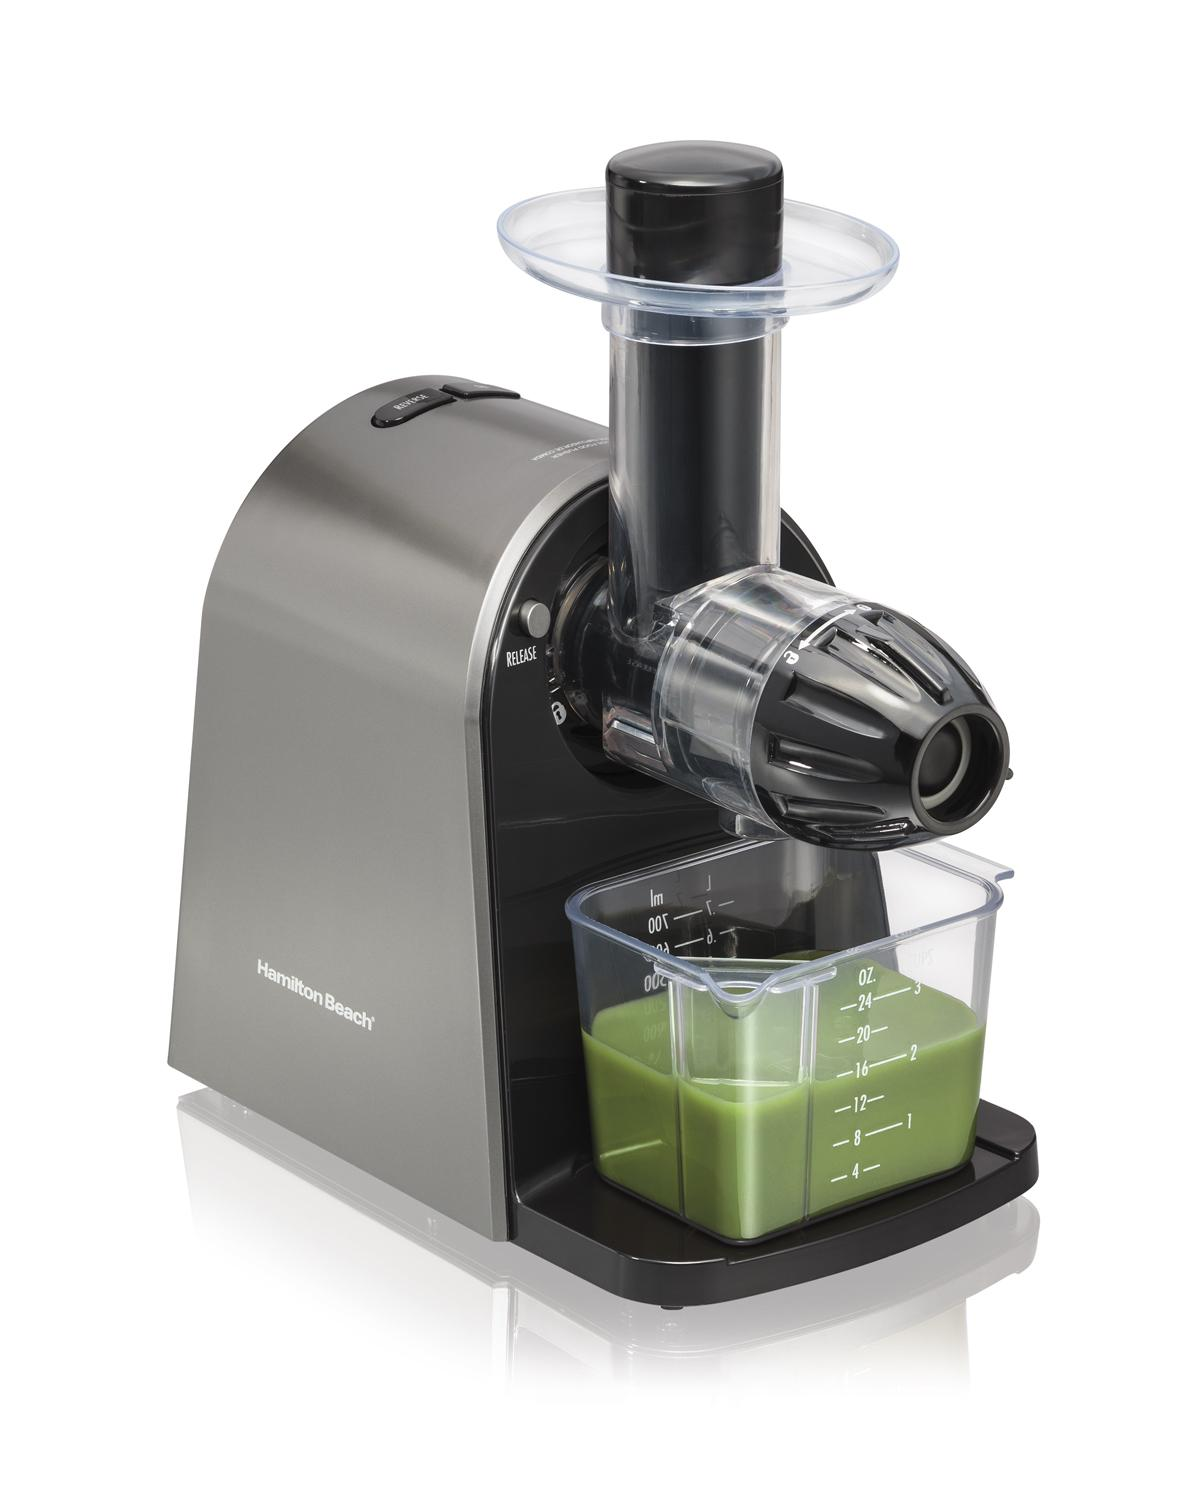 Review Best Slow Juicer : juicer breville commercial cuisinart omega extractor slow juicers electric vegetable masticating